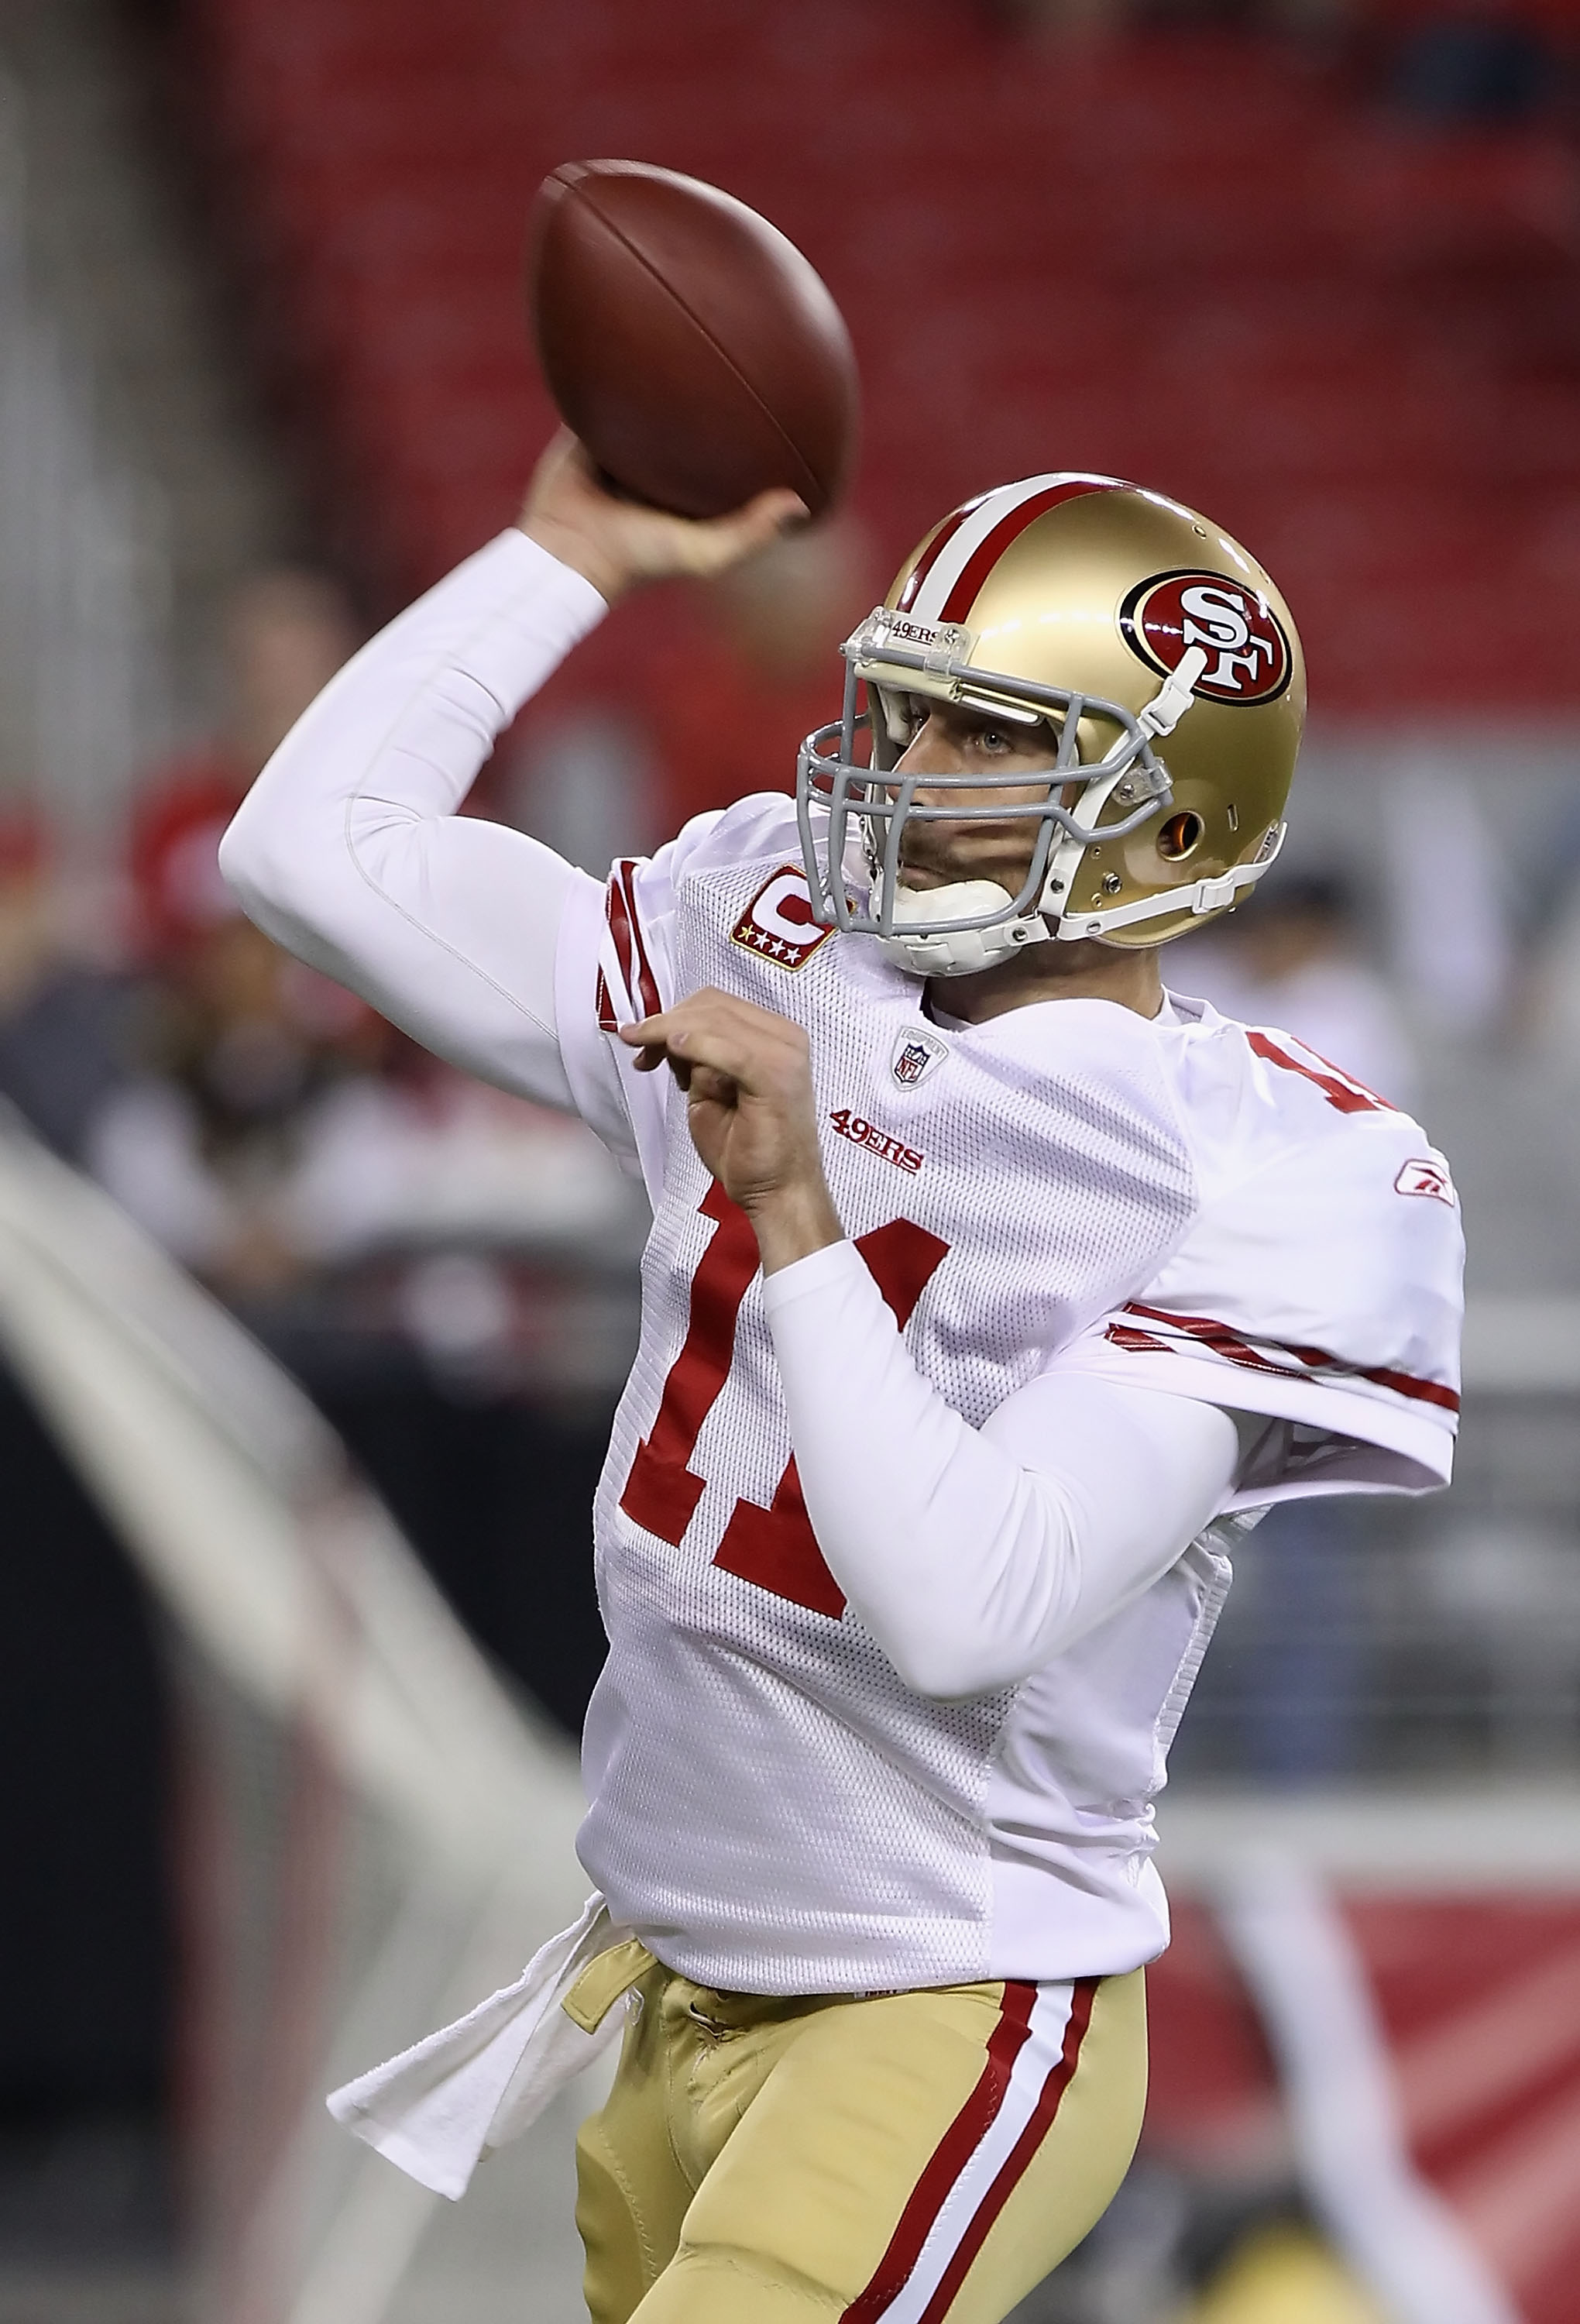 GLENDALE, AZ - NOVEMBER 29:  Quarterback Alex Smith #1 of the San Francisco 49ers warms up before the NFL game against the Arizona Cardinals at the University of Phoenix Stadium on November 29, 2010 in Glendale, Arizona. The 49ers defeated the Cardinals 2